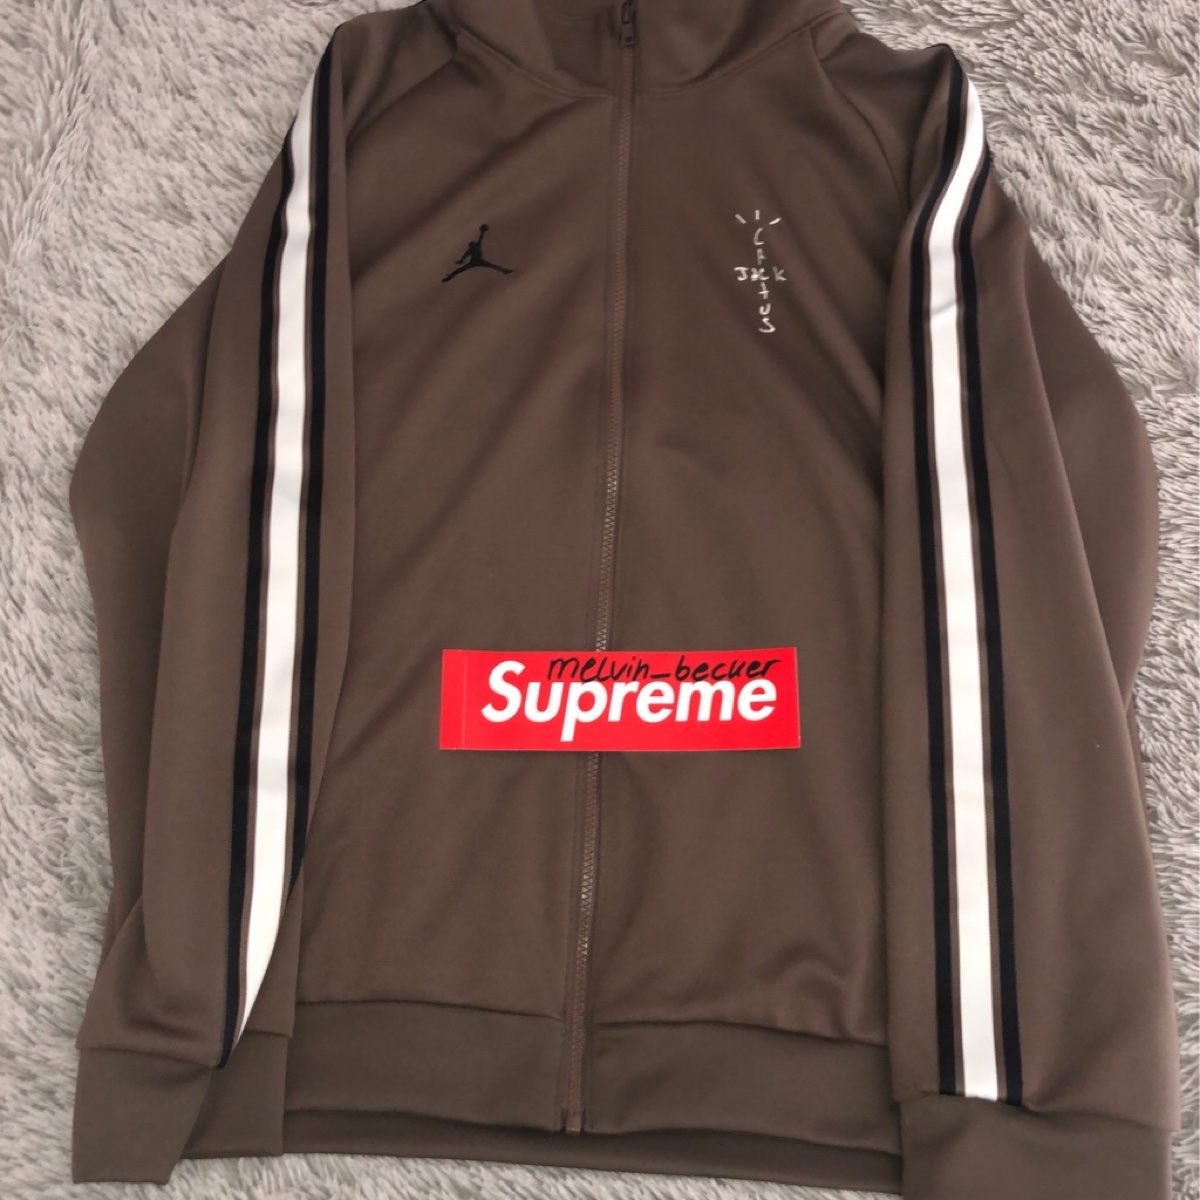 Travis Scott Palomino Jacket